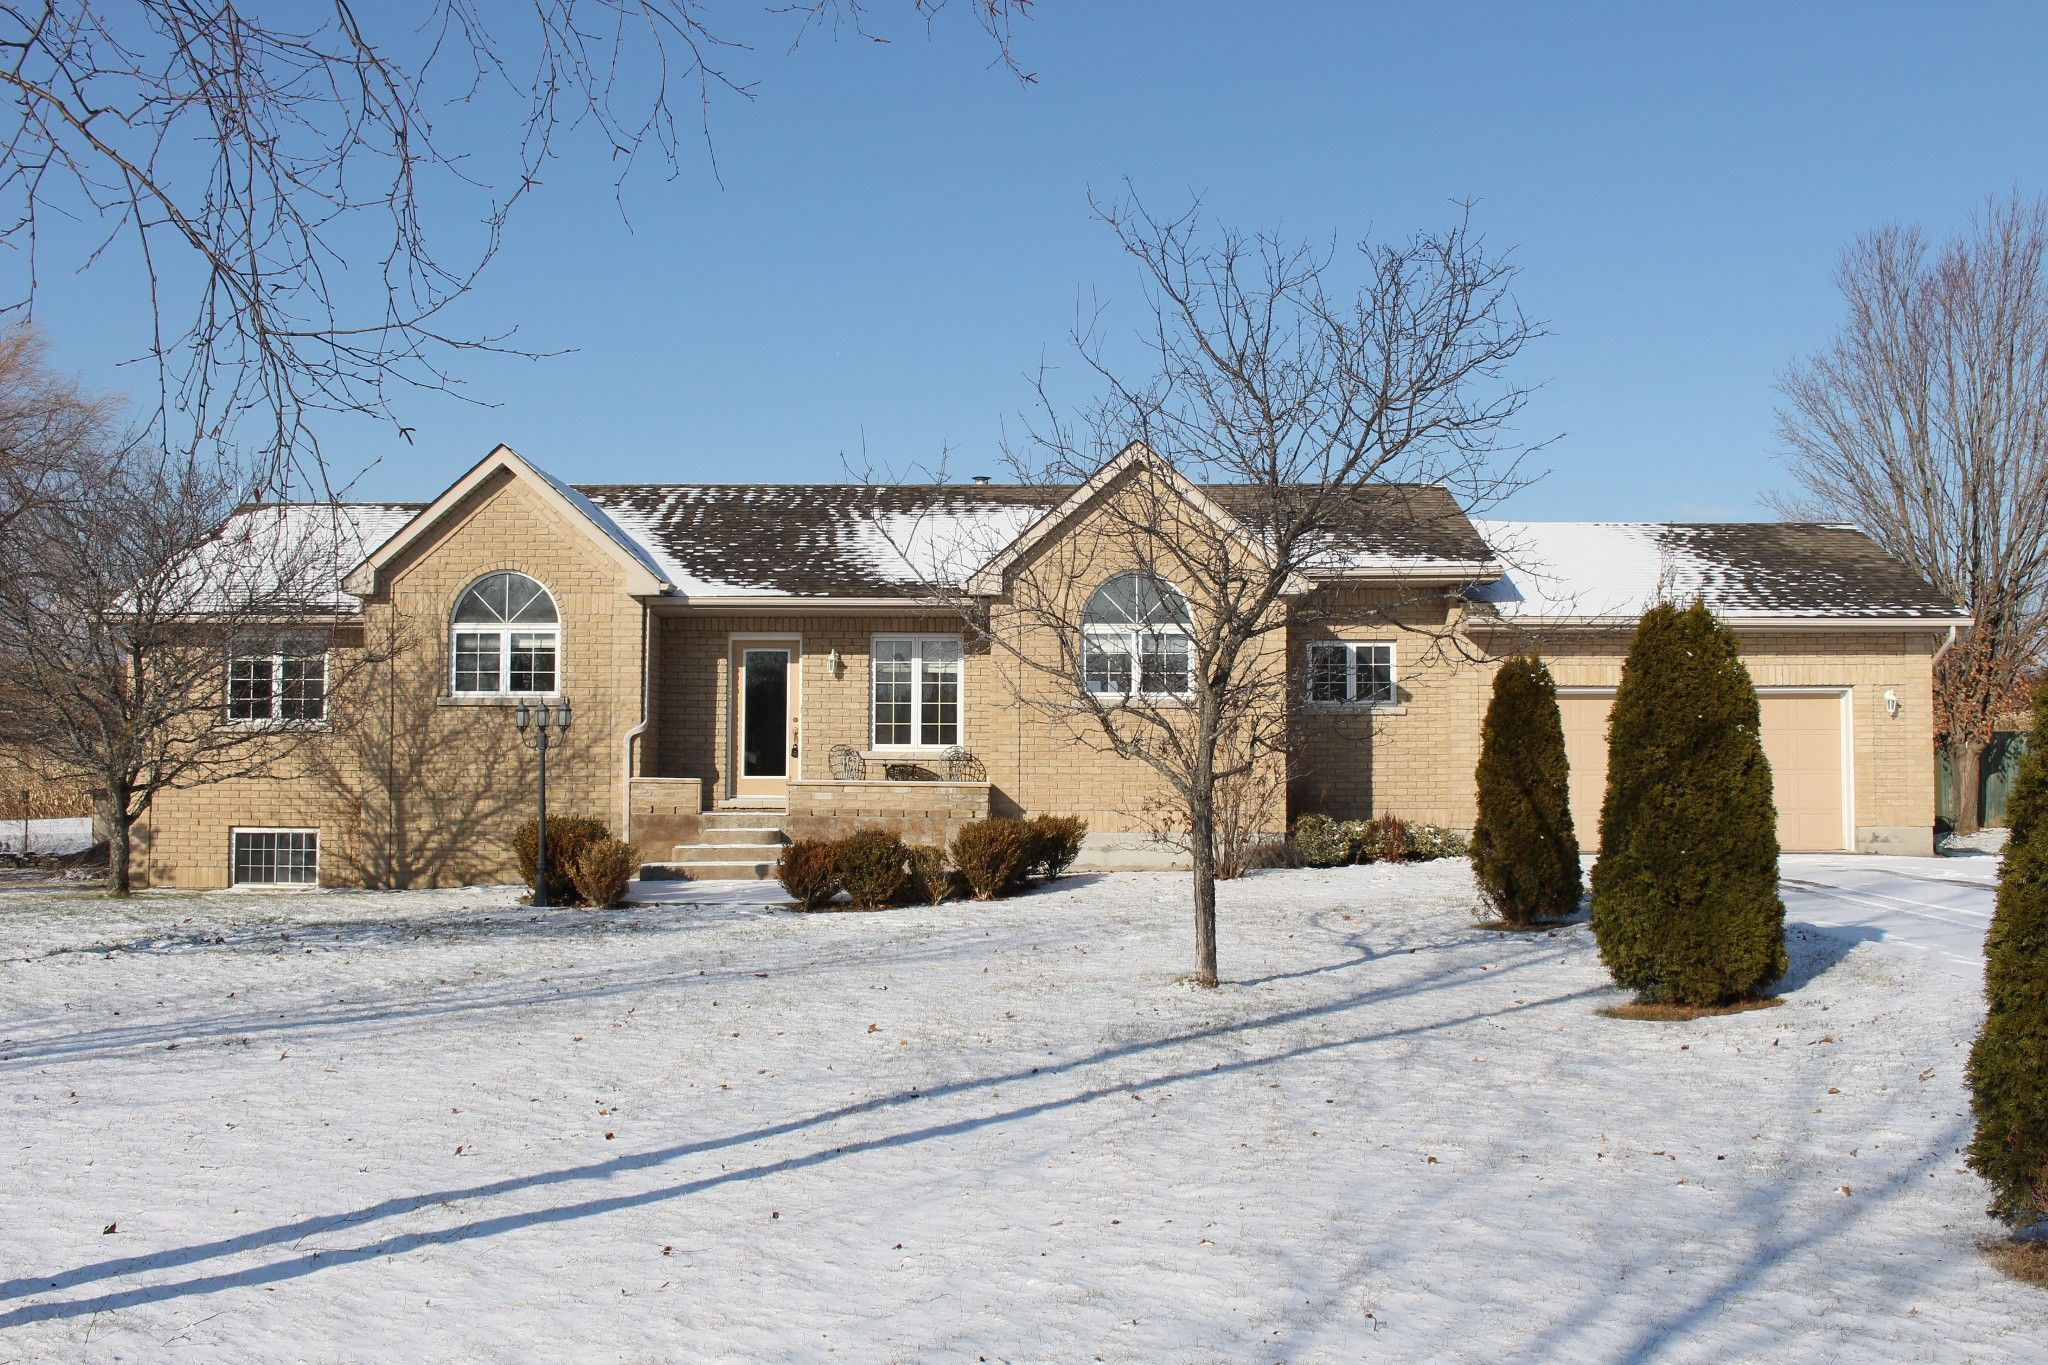 Main Photo: 8524 Dale Rd in Hamilton Twp: House for sale : MLS®# 236443